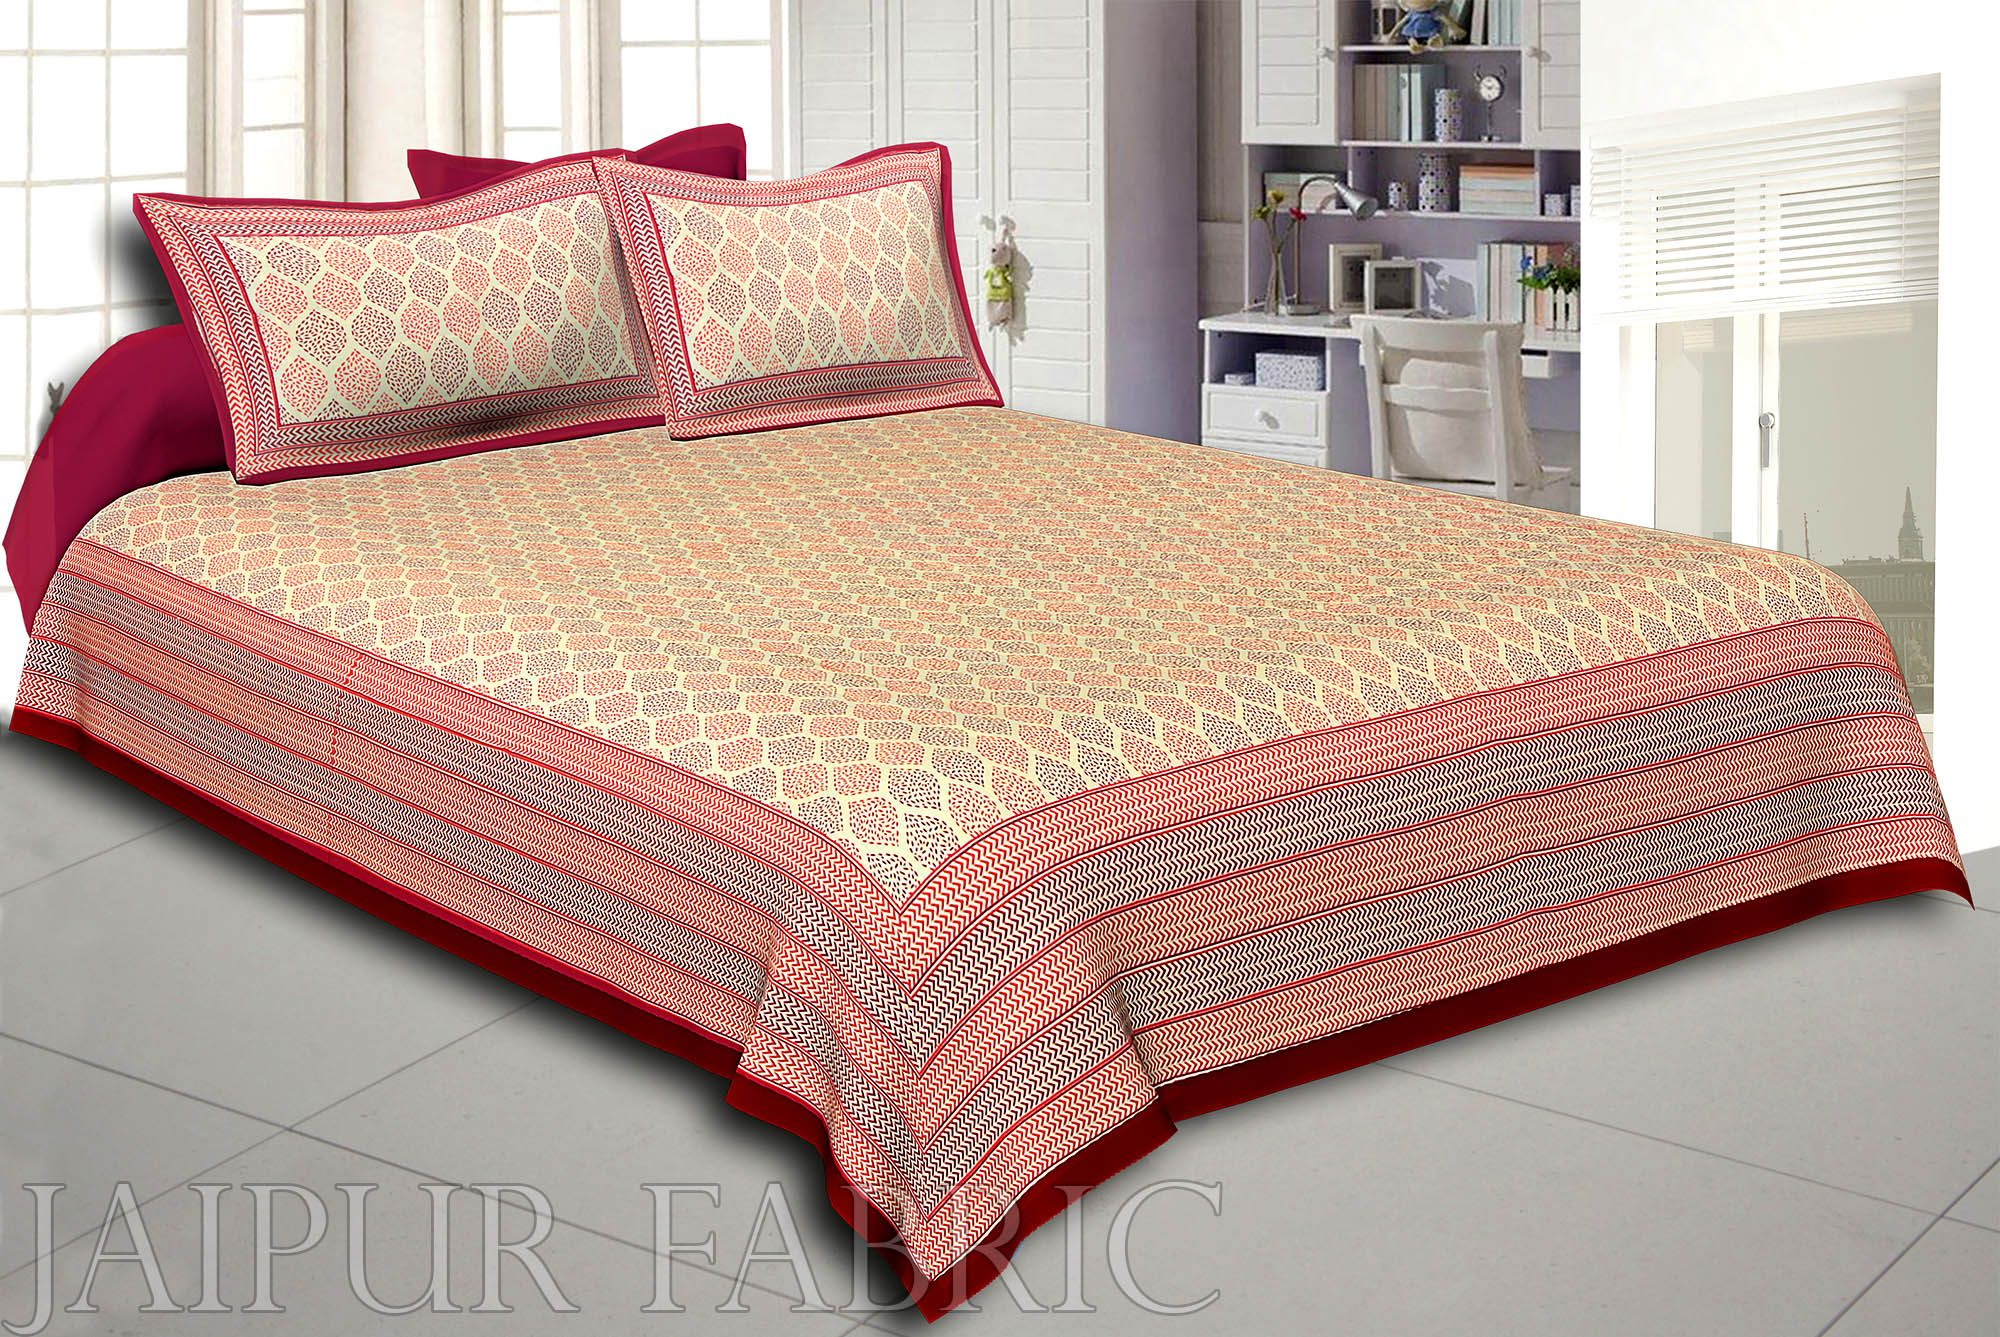 Dark Brown Border Cream Base Leaf Pigment Cotton Satin Hand Block King Size Double Bedsheet